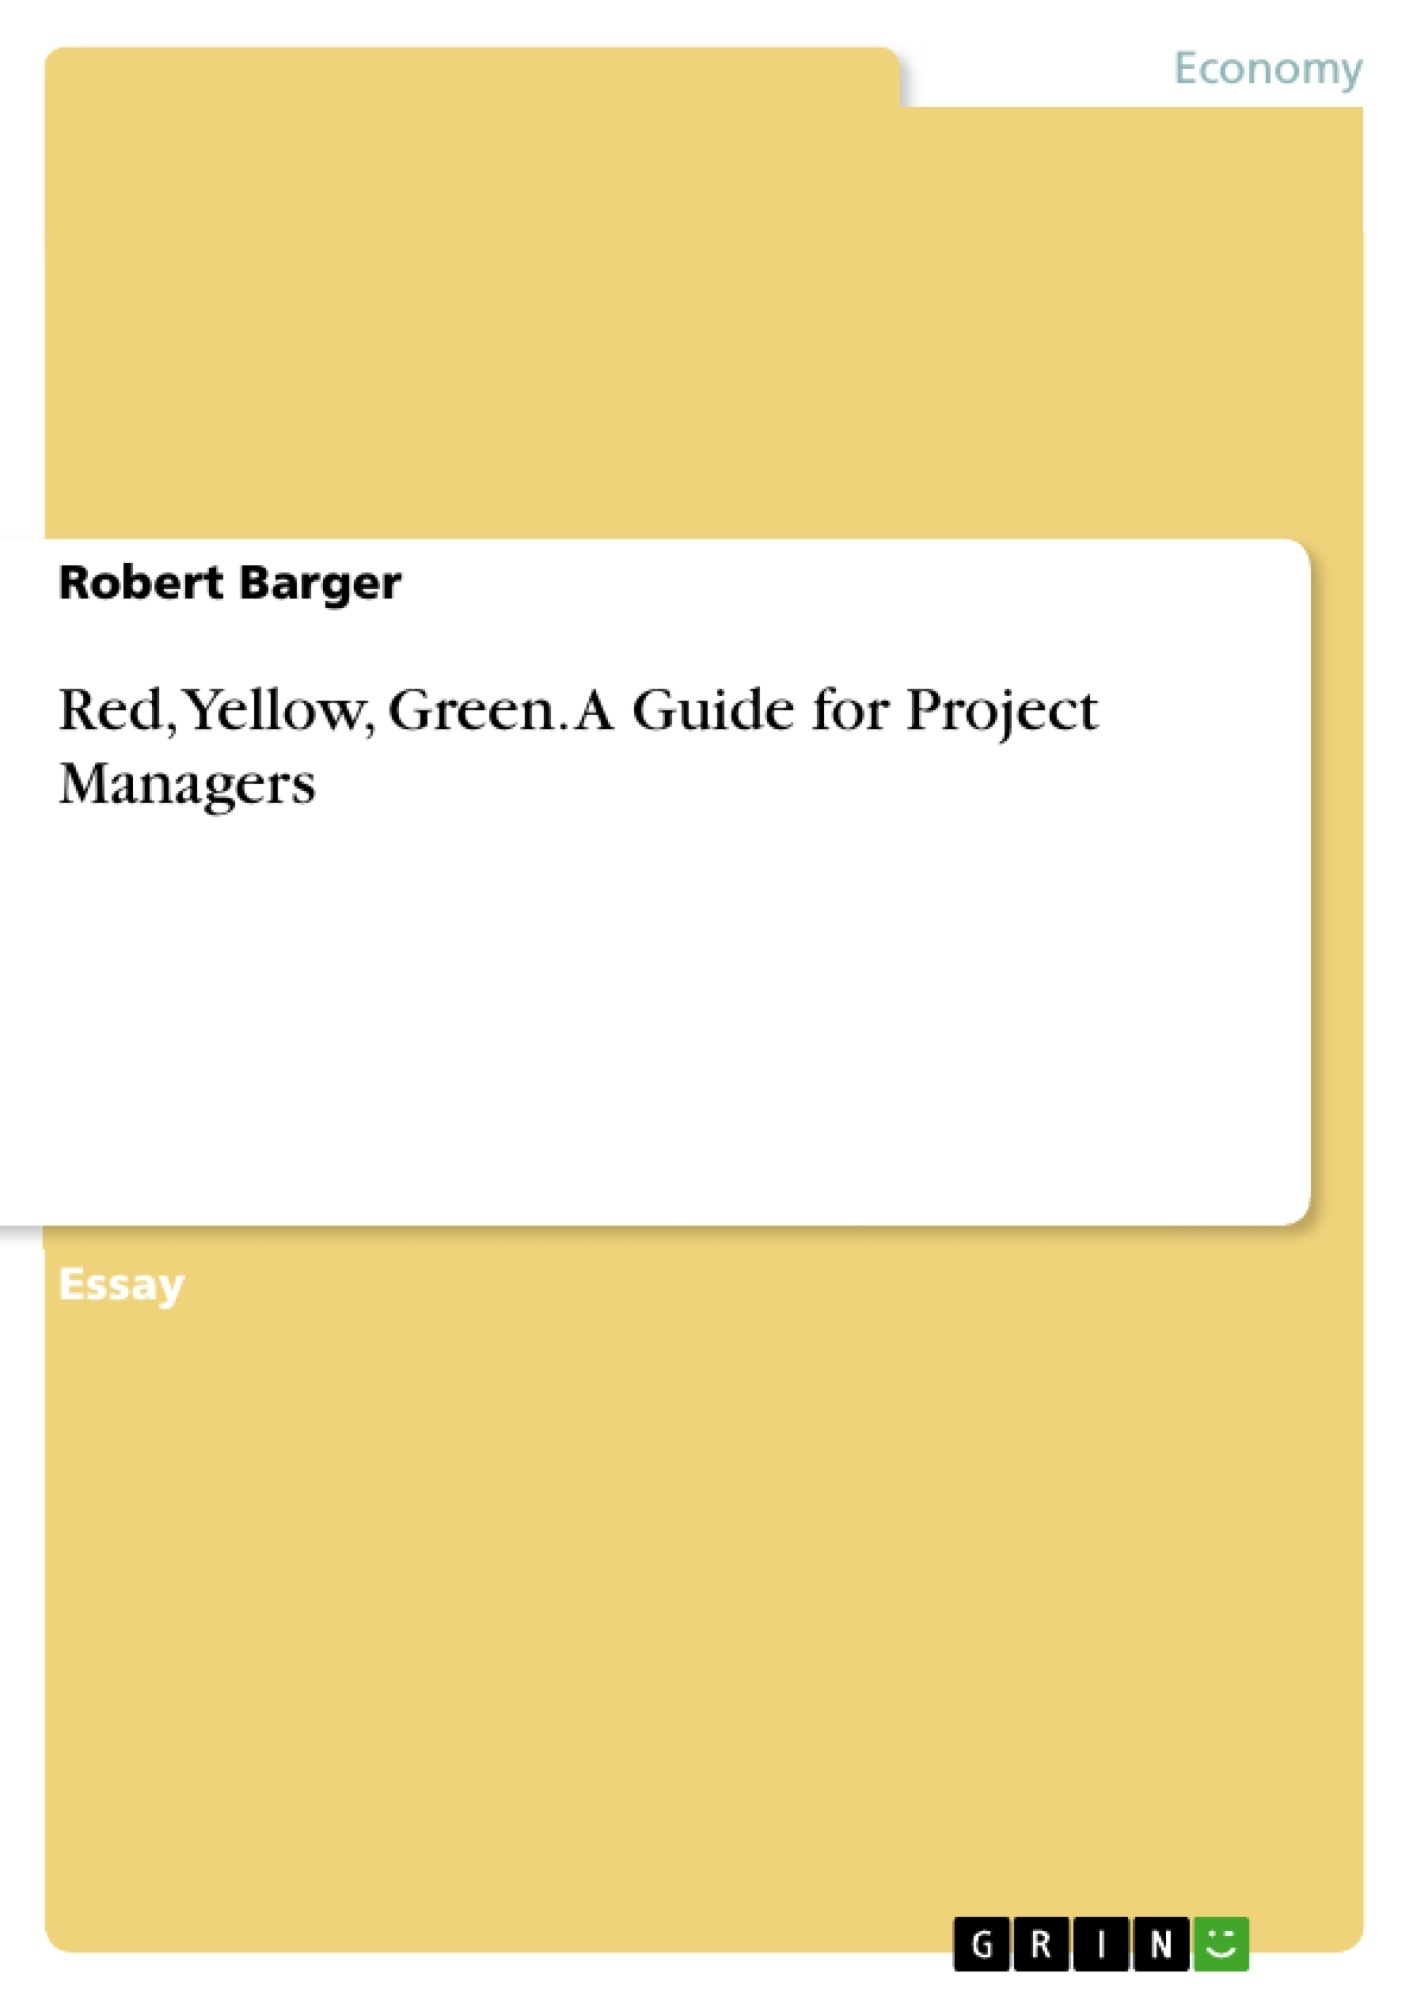 Title: Red, Yellow, Green. A Guide for Project Managers